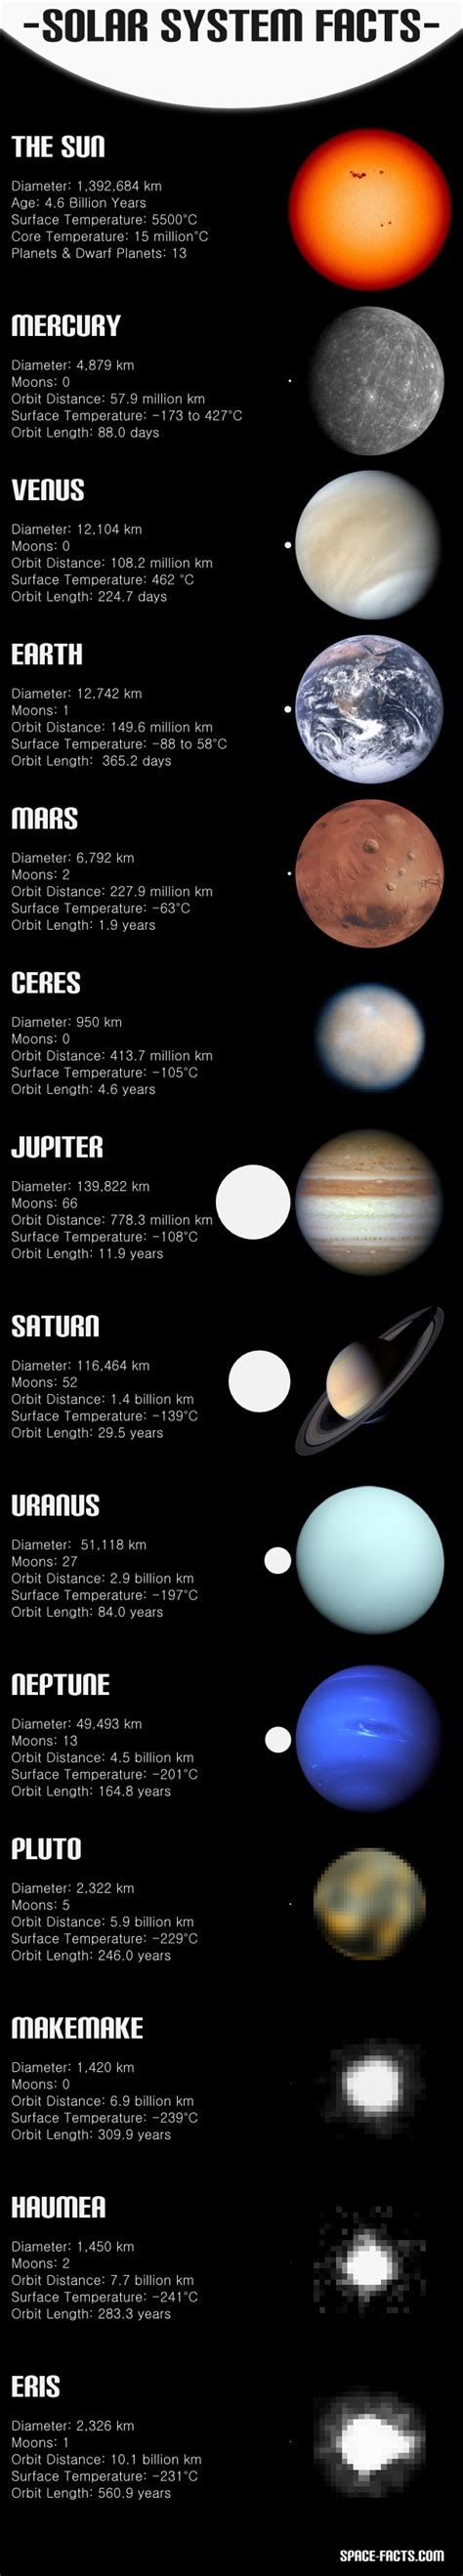 8 Facts On The Solar System by Solar System Facts The Last 4 Are Questionable Pluto Is